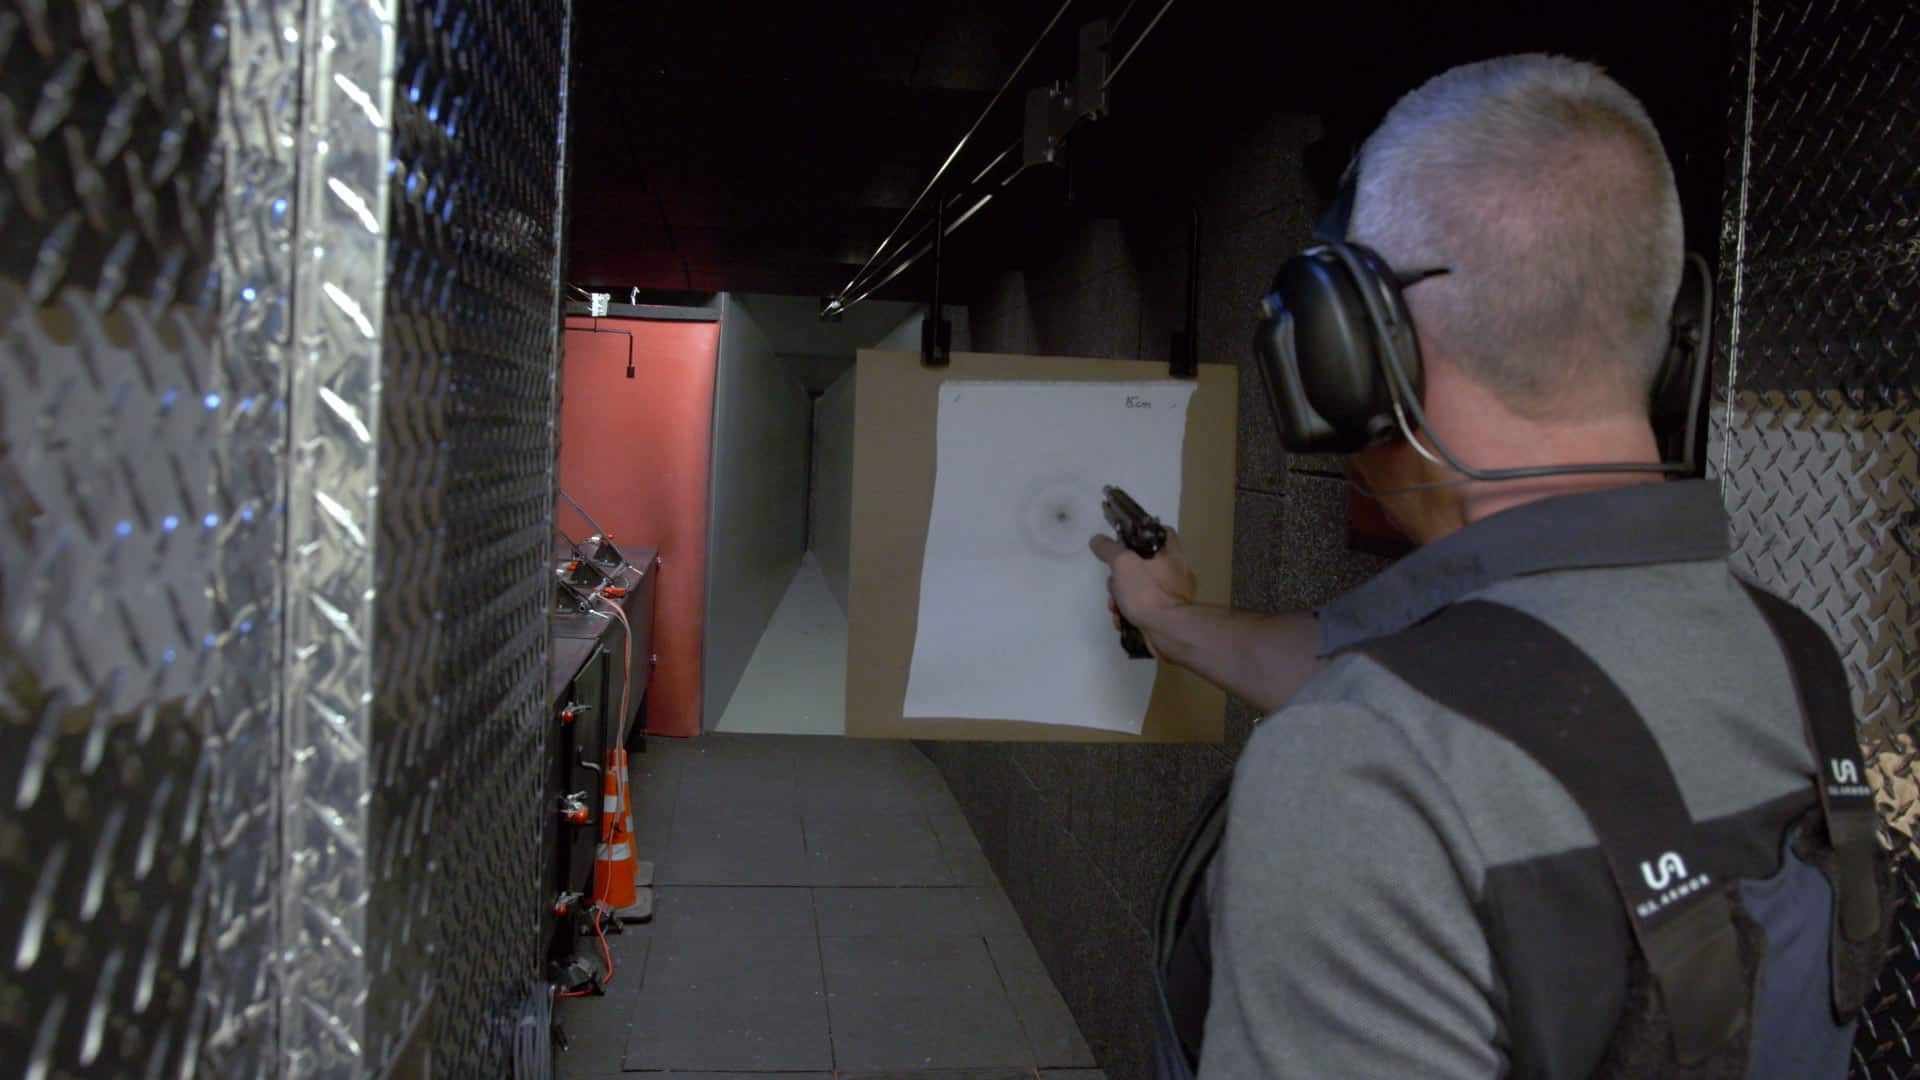 Director's thoughts: Calgary Police - Forensic Firearms Lab